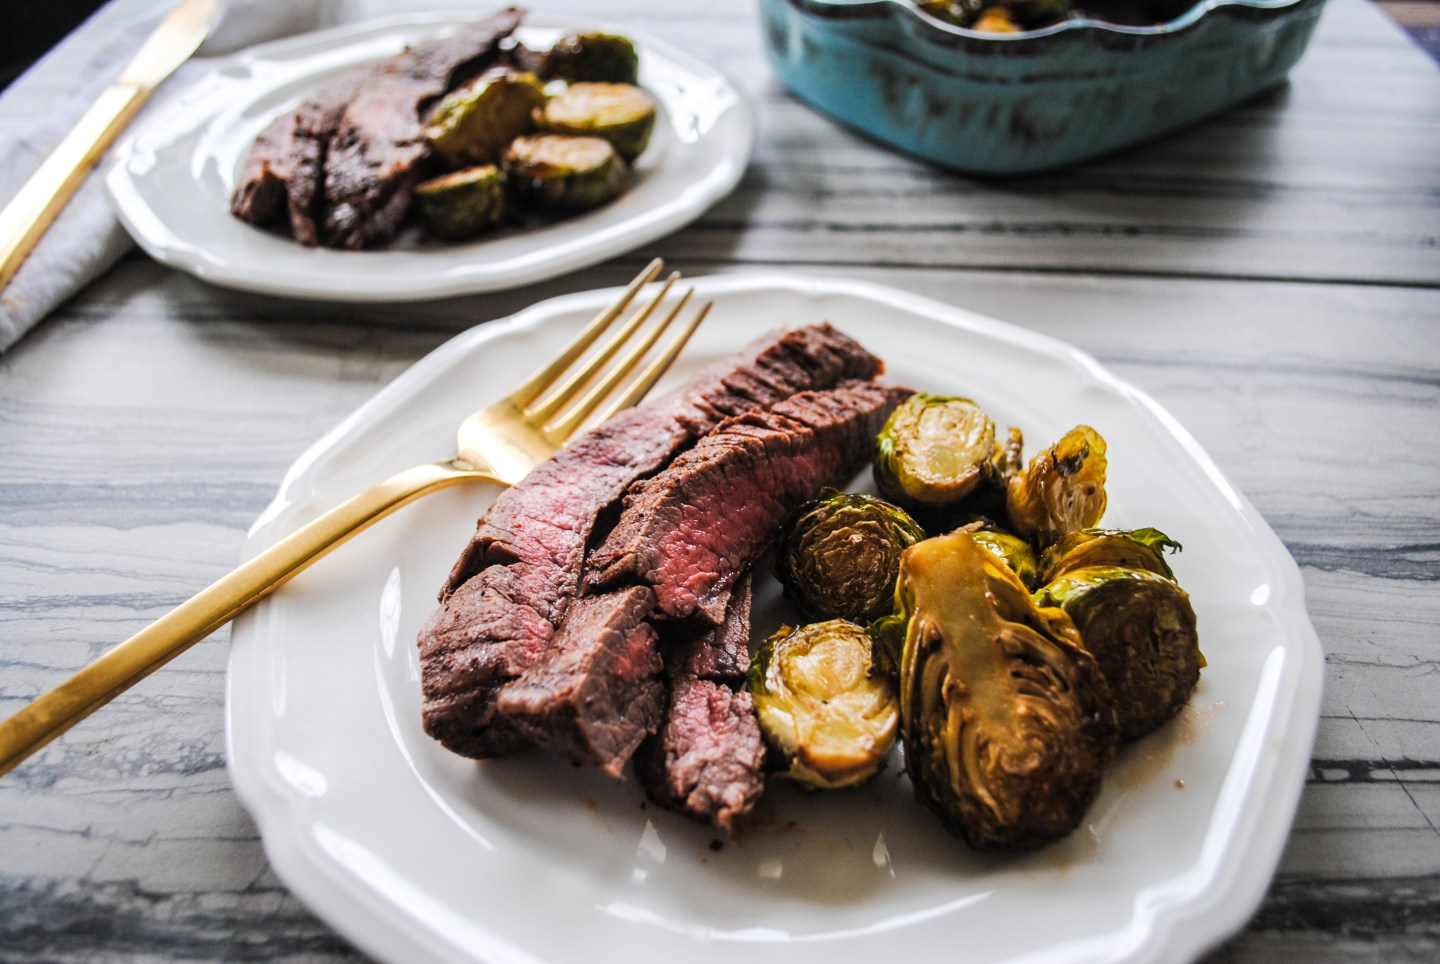 Food Blogger Jenny Meassick of Chocolate and Lace shares her recipe for Flank Steaks and Honey Balsamic Brussel Sprouts